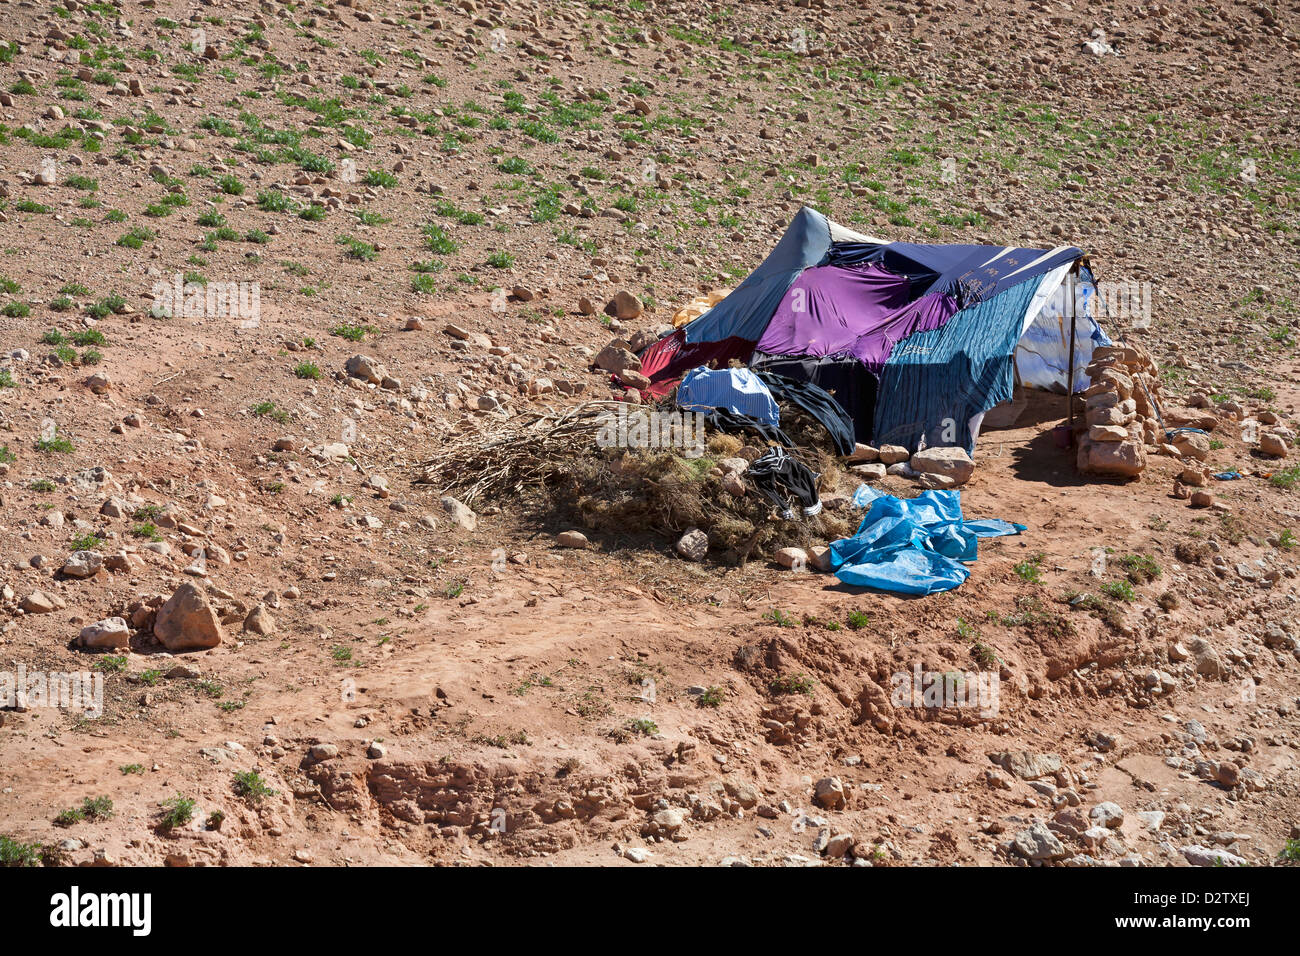 Homes and settlements of Berber nomads in Boughrar Valley, Morocco, North Africa - Stock Image